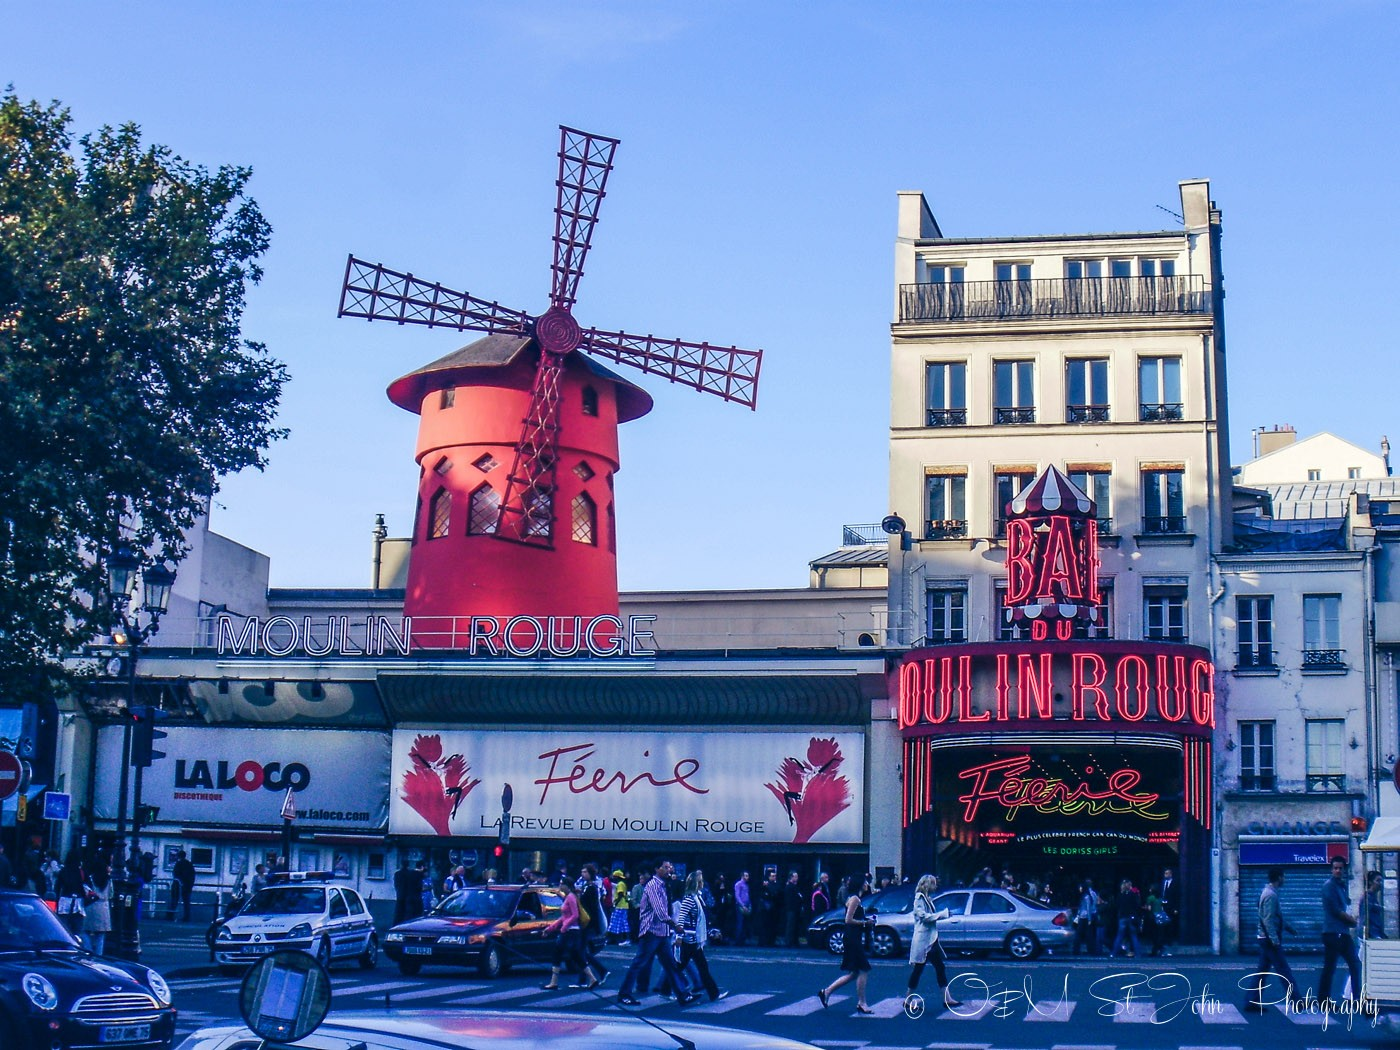 Moulin Rouge, Montmartre, Paris. France. Europe